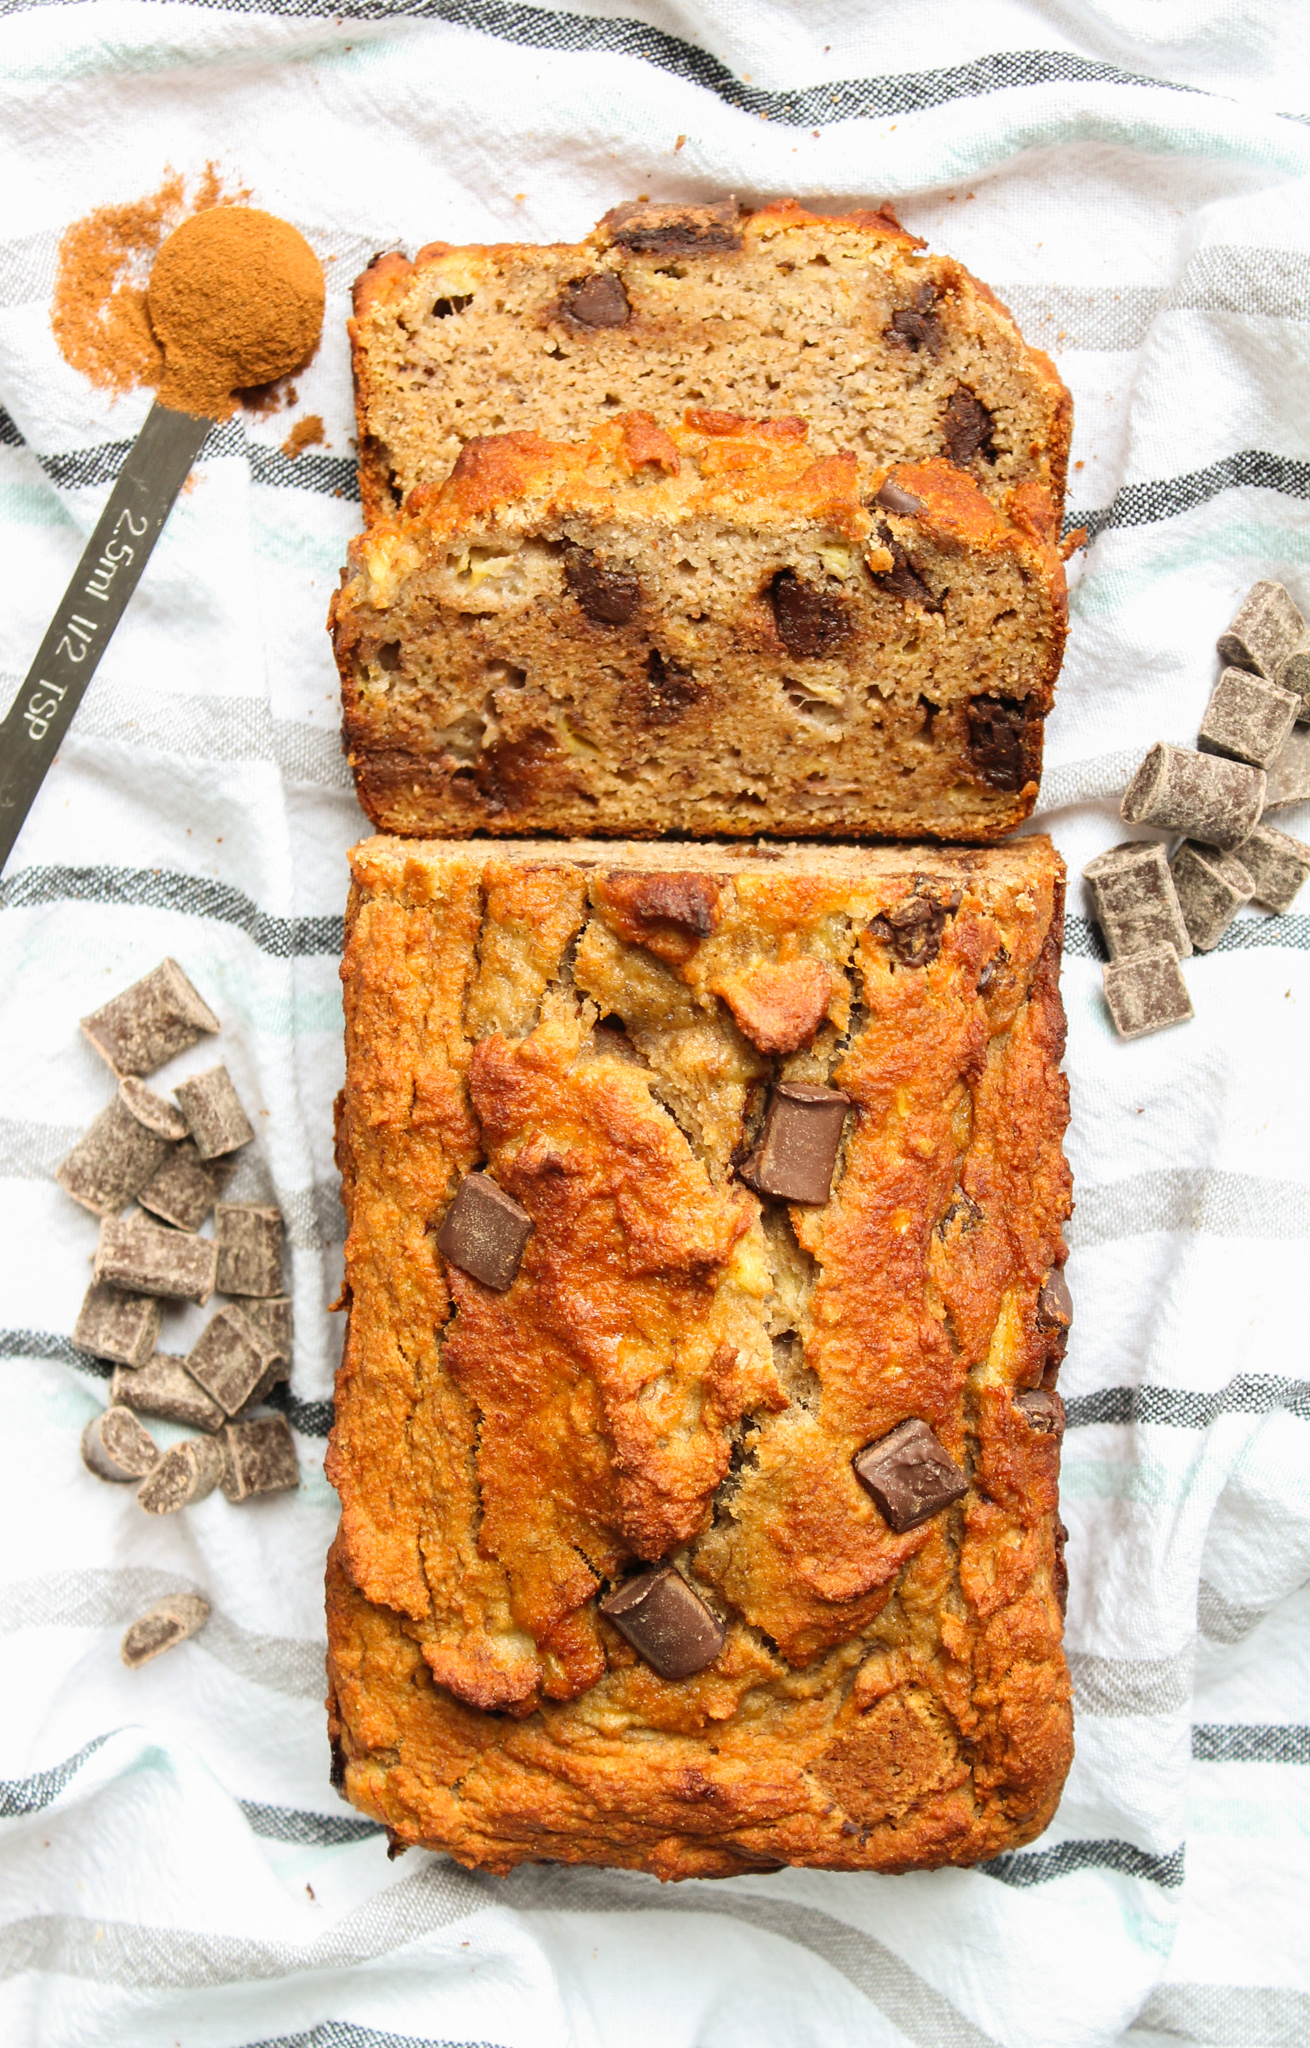 Grain-Free Chocolate Chunk Banana Bread